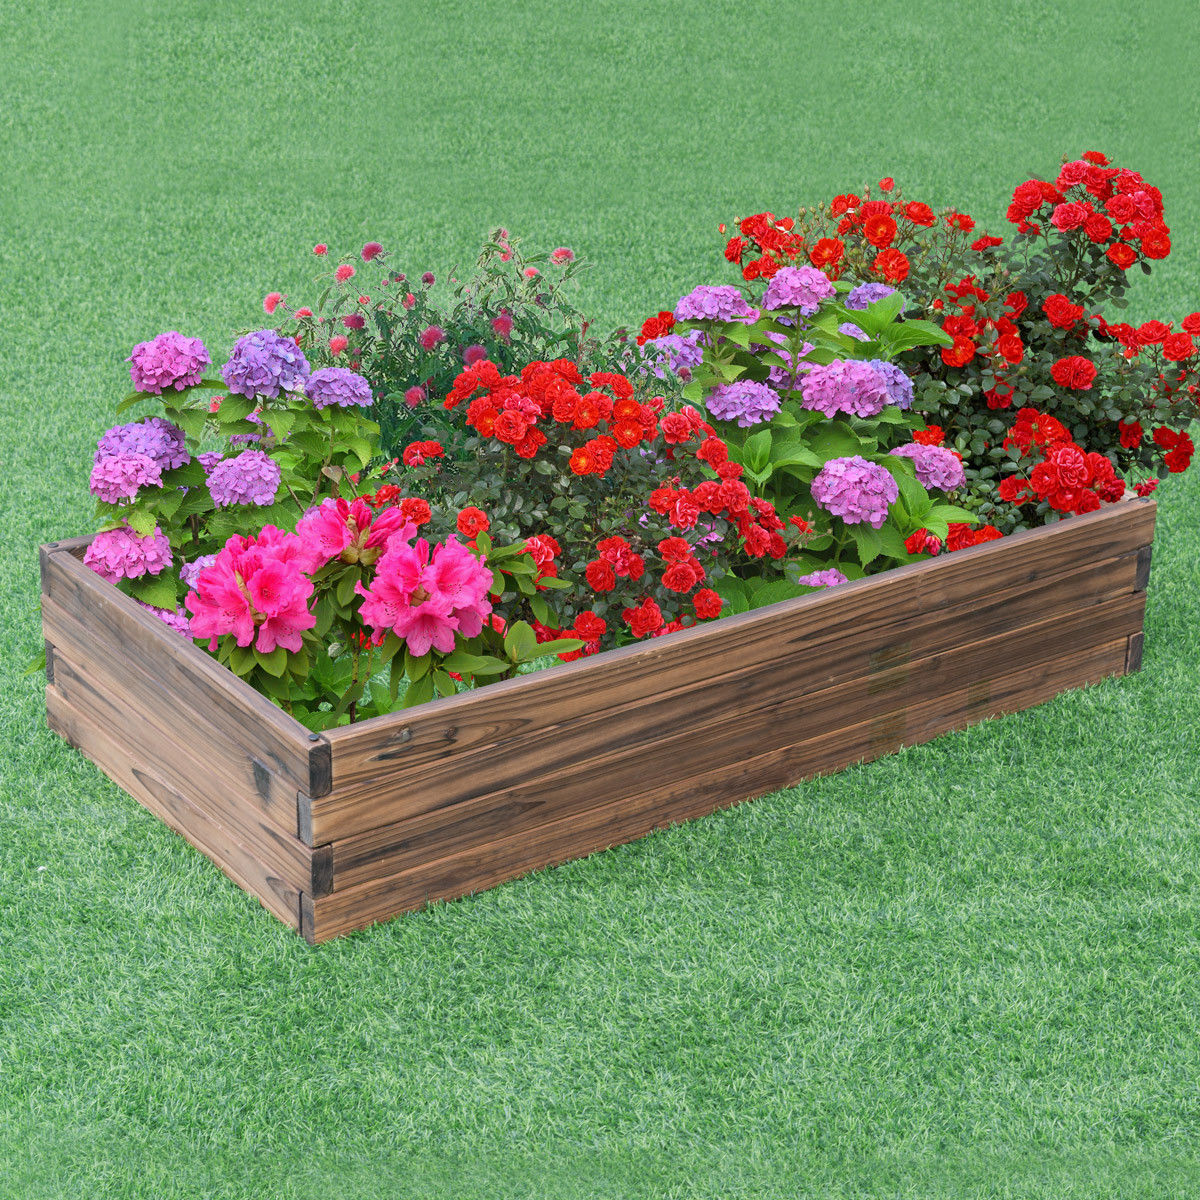 Planter For Herbs Gymax Wooden Raised Garden Bed Kit Elevated Planter Box For Growing Herbs Vegetable